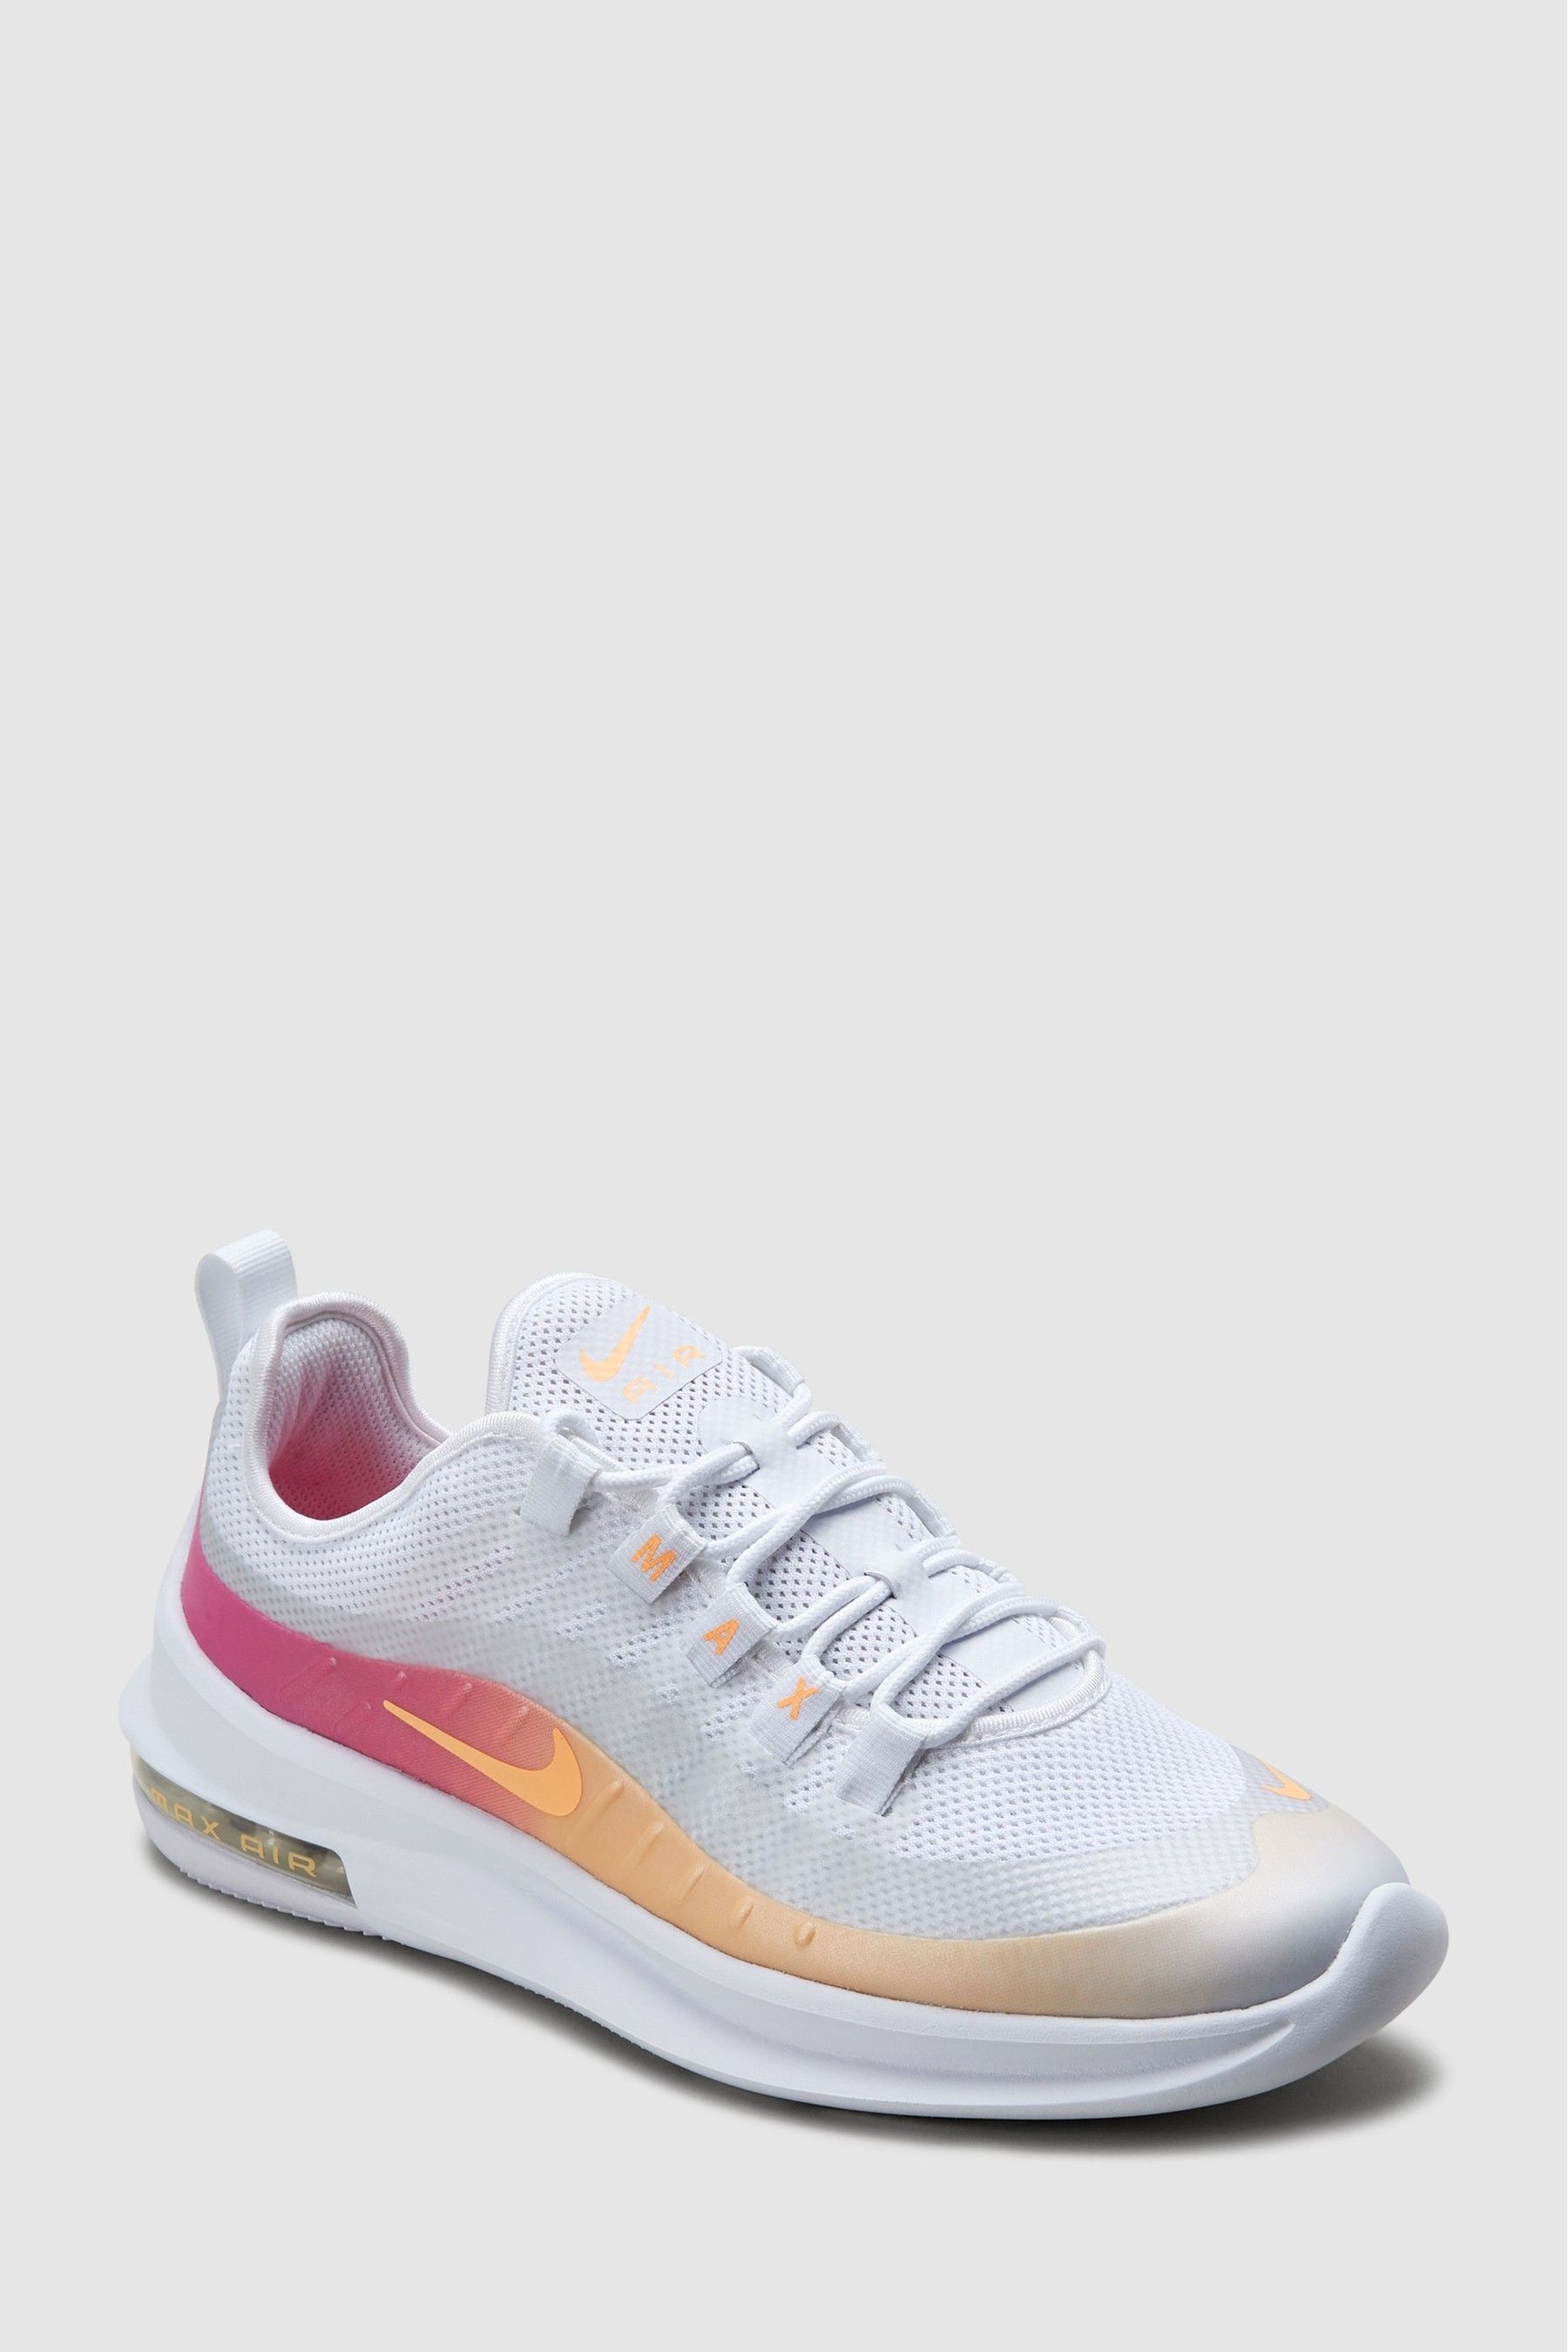 Womens Nike Air Max Axis Premium Trainers White | sneakers